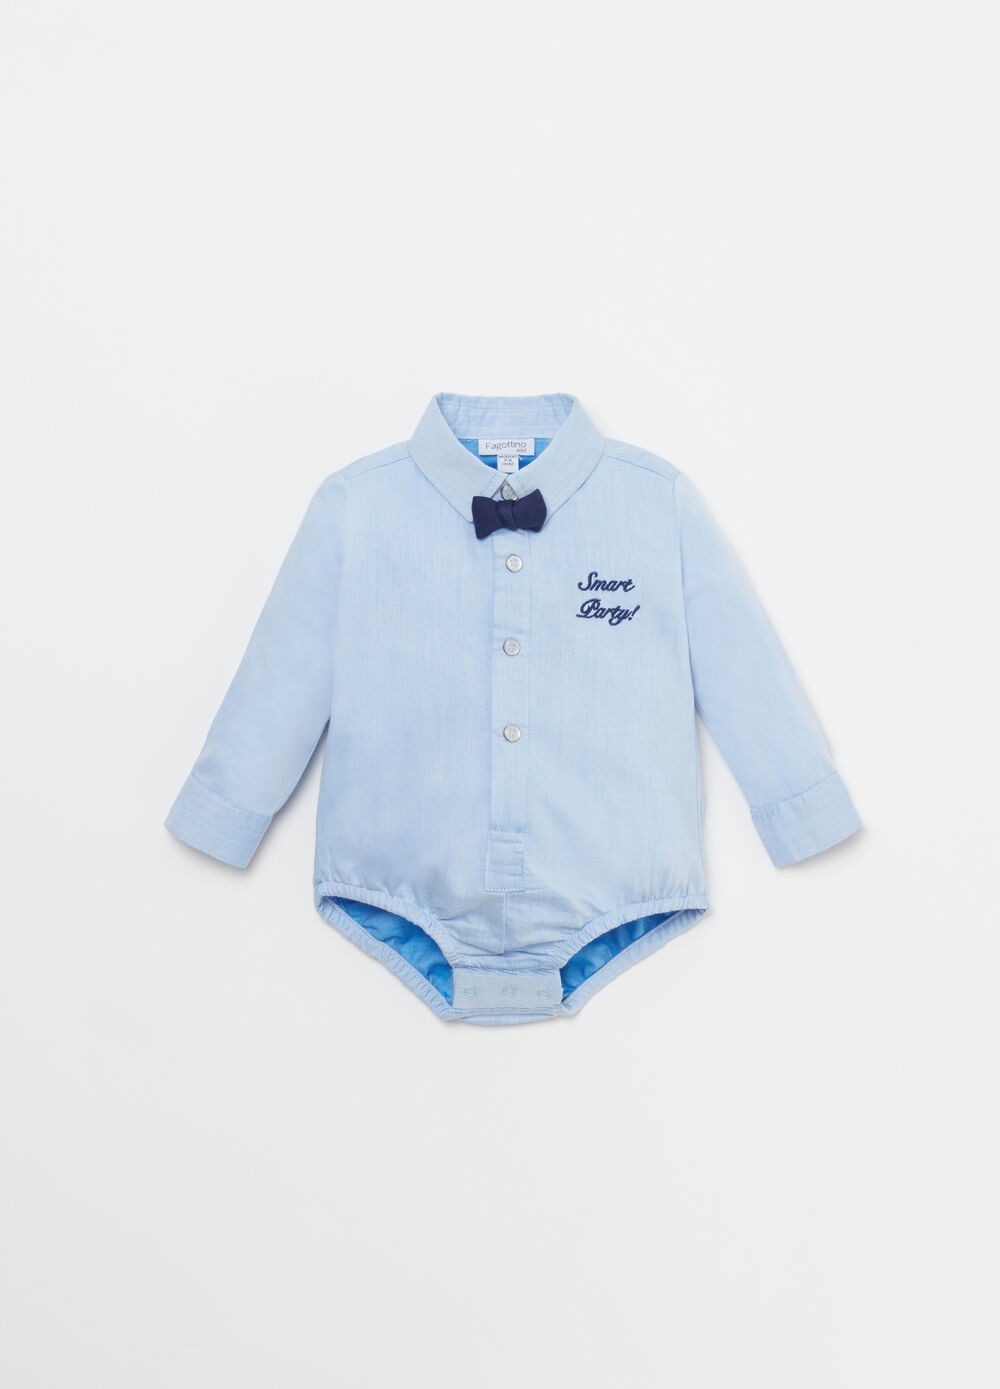 Oxford bodysuit shirt with embroidery and opening